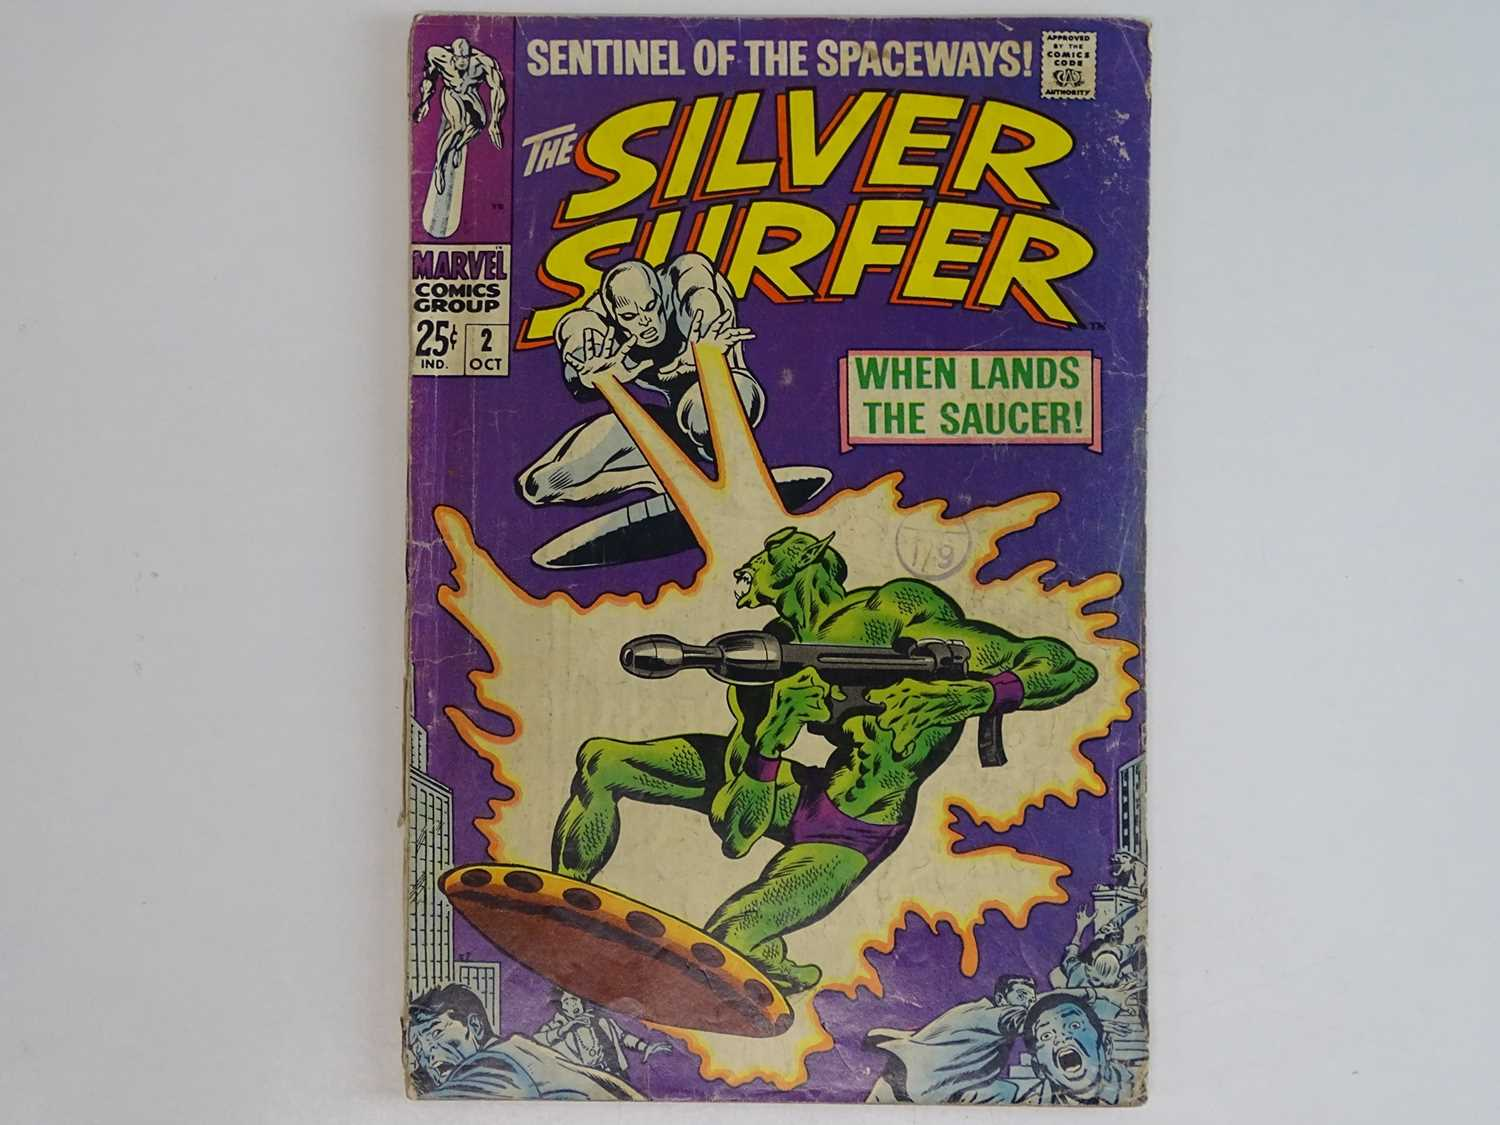 SILVER SURFER #2 - (1968 - MARVEL - UK Cover Price) - First appearance of the Brotherhood of